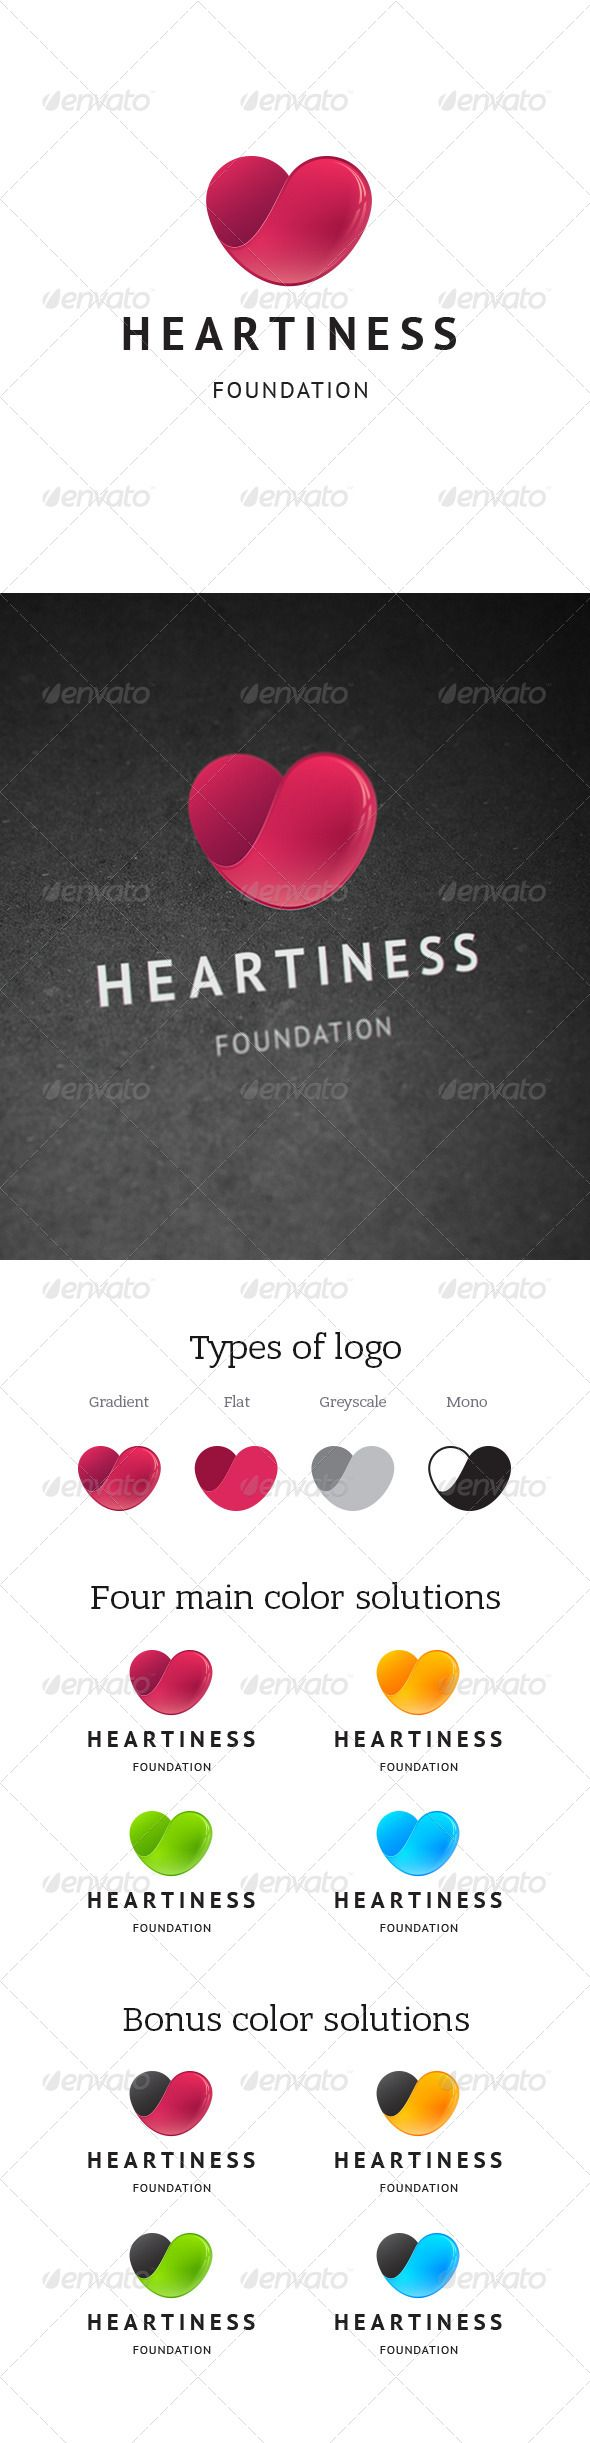 Heartiness Charity Foundation Logo